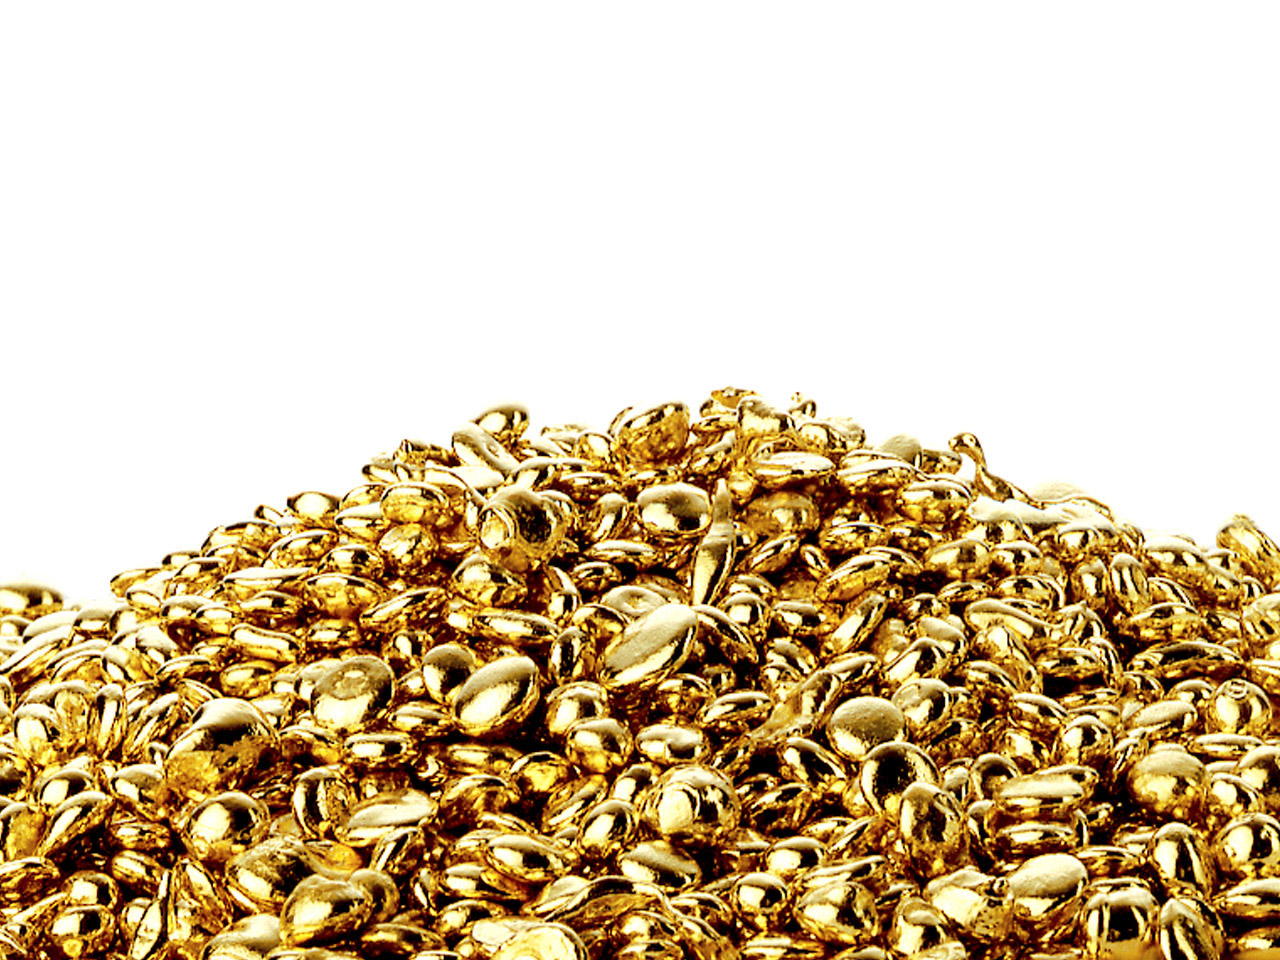 Fine Gold Grain Minimum 99.96% Au